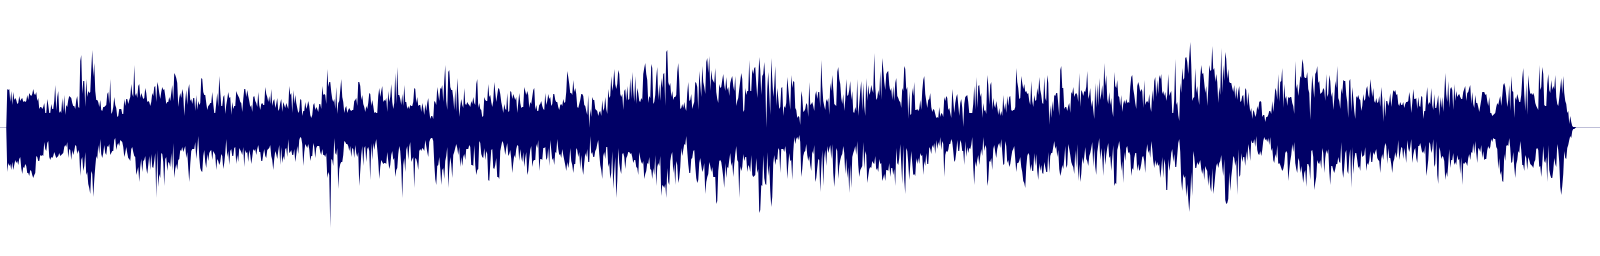 waveform of track #91411